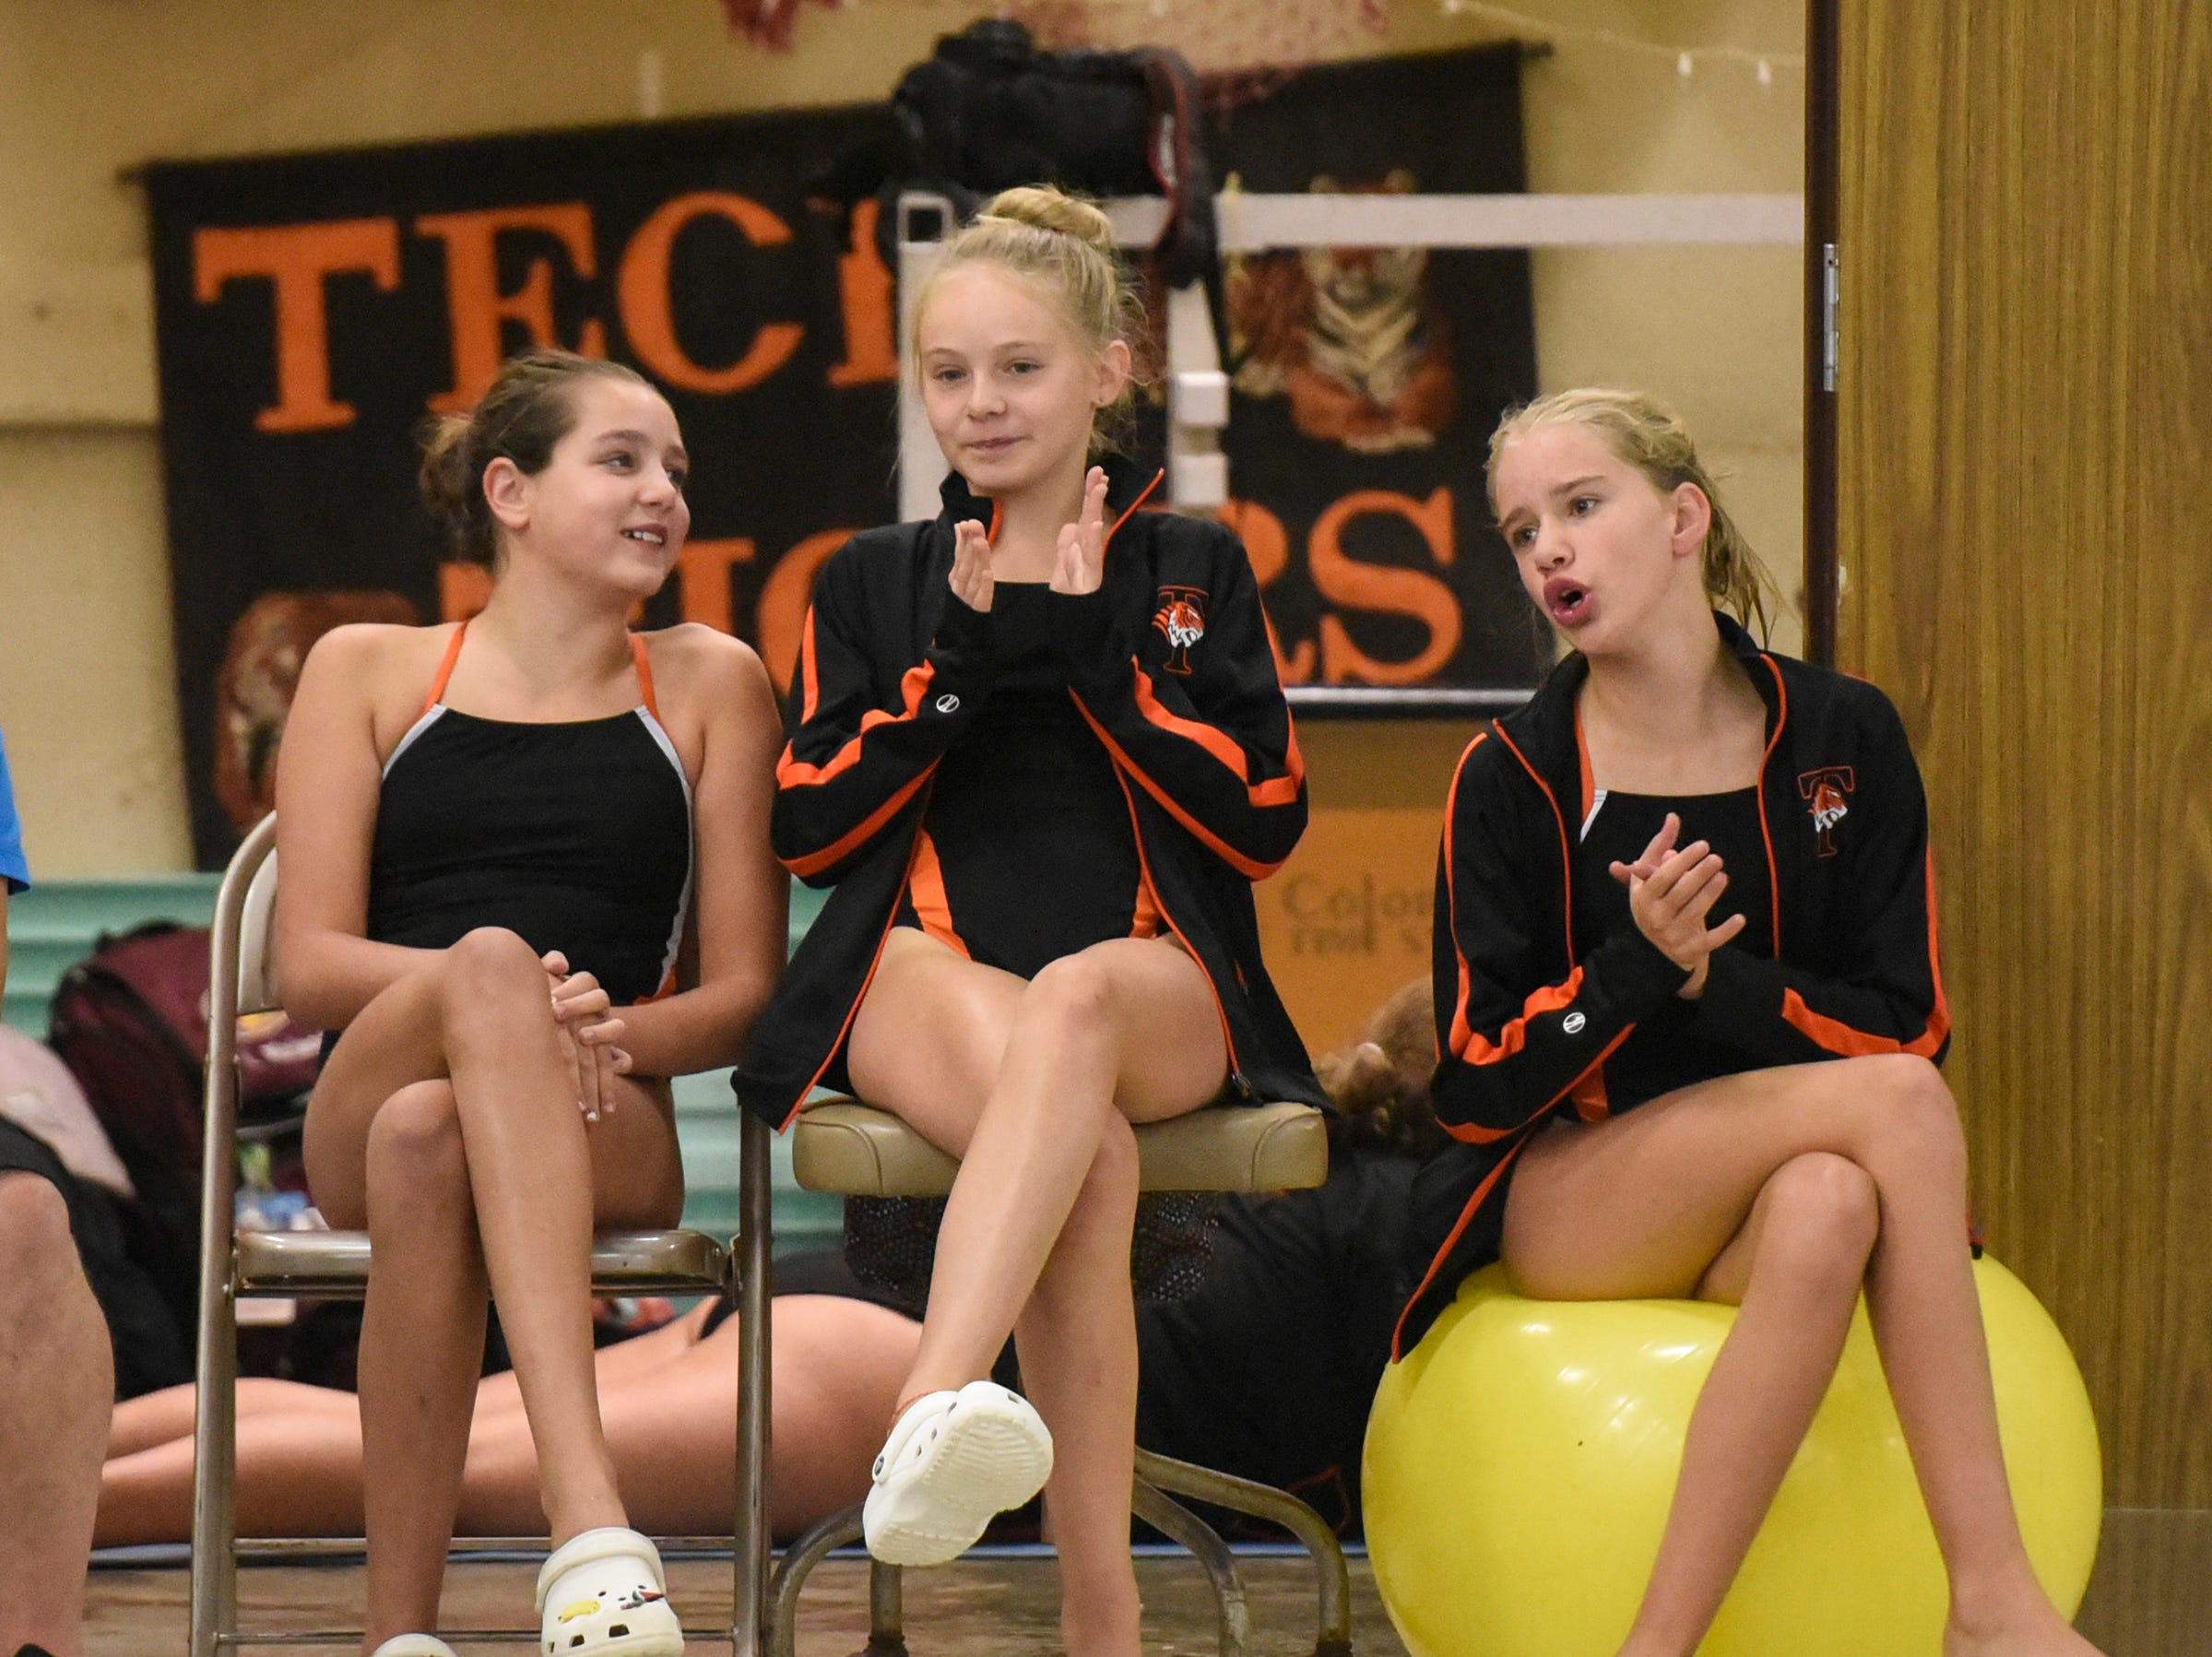 Tech swim team members watch the diving competition during the Tuesday, Sept. 18 meet against Buffalo at Tech High School in St. Cloud.